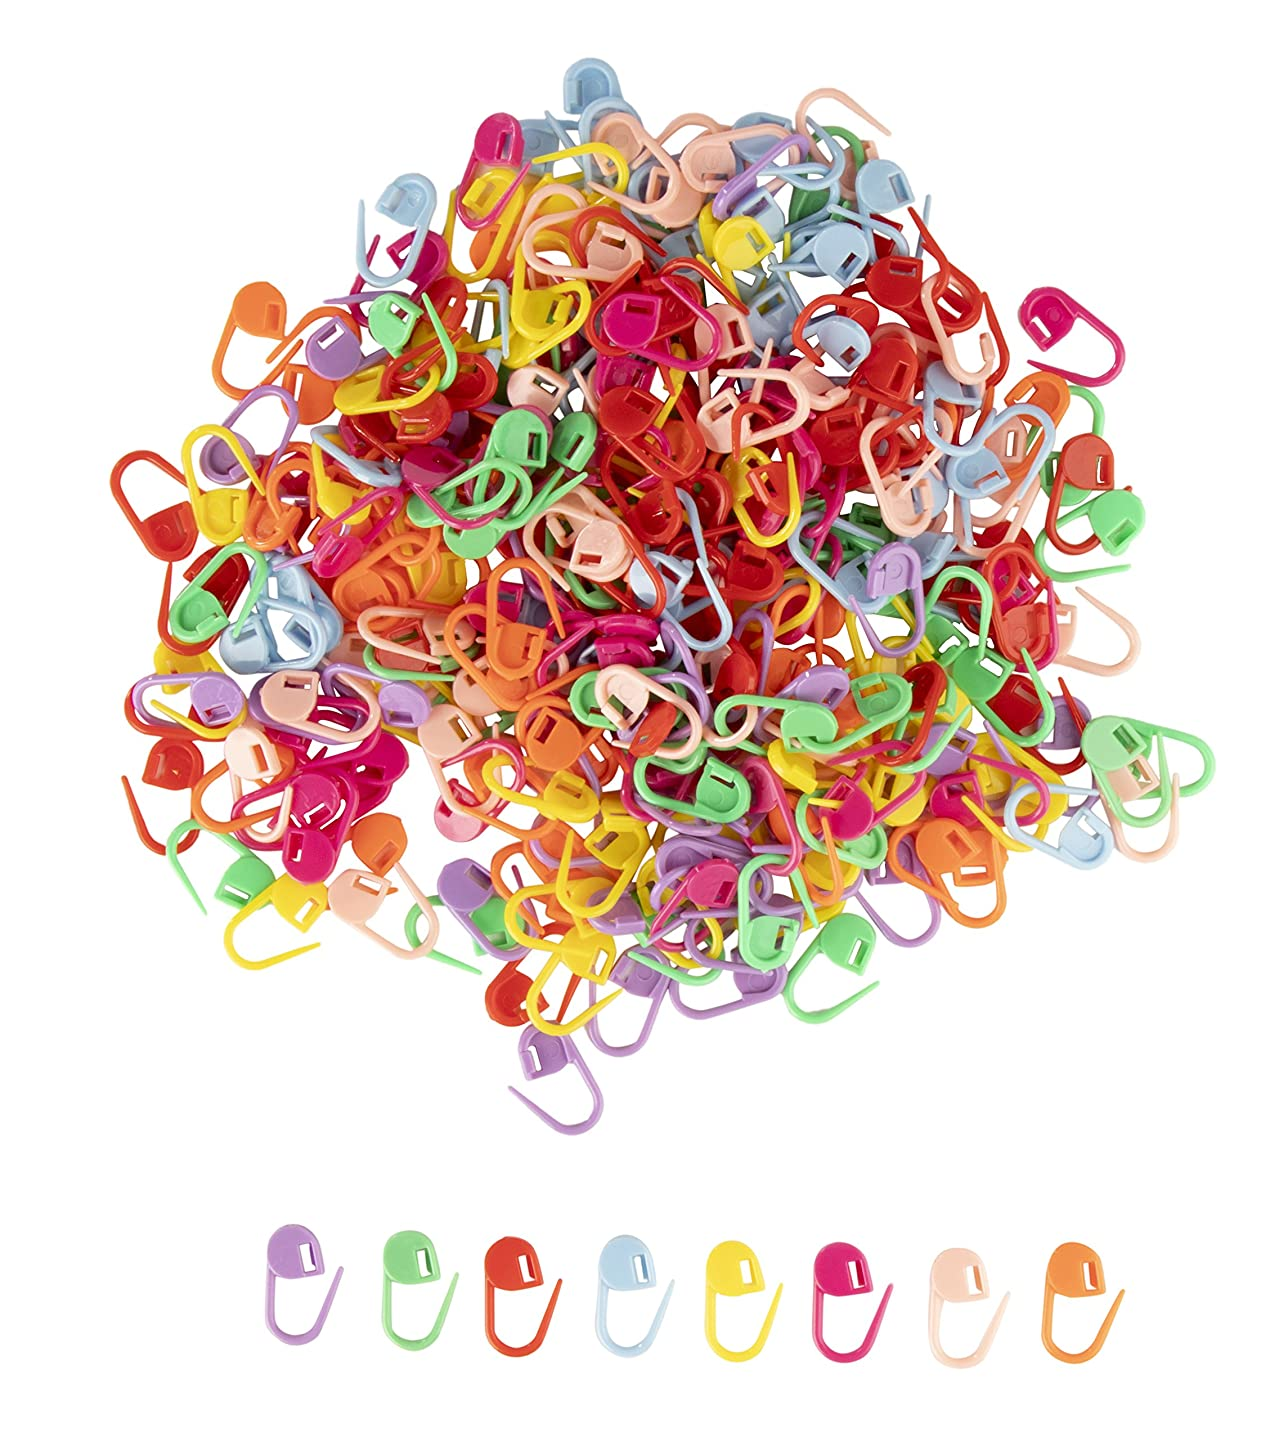 Stitch Markers - 320-Piece Knitting Stitch Markers, Crochet Stitch Markers, Stitch Needle Clips for Sewing, Quilting, Weaving, and DIY Craft, 40 of Each 8 Colors, 0.86 x 0.4 Inches